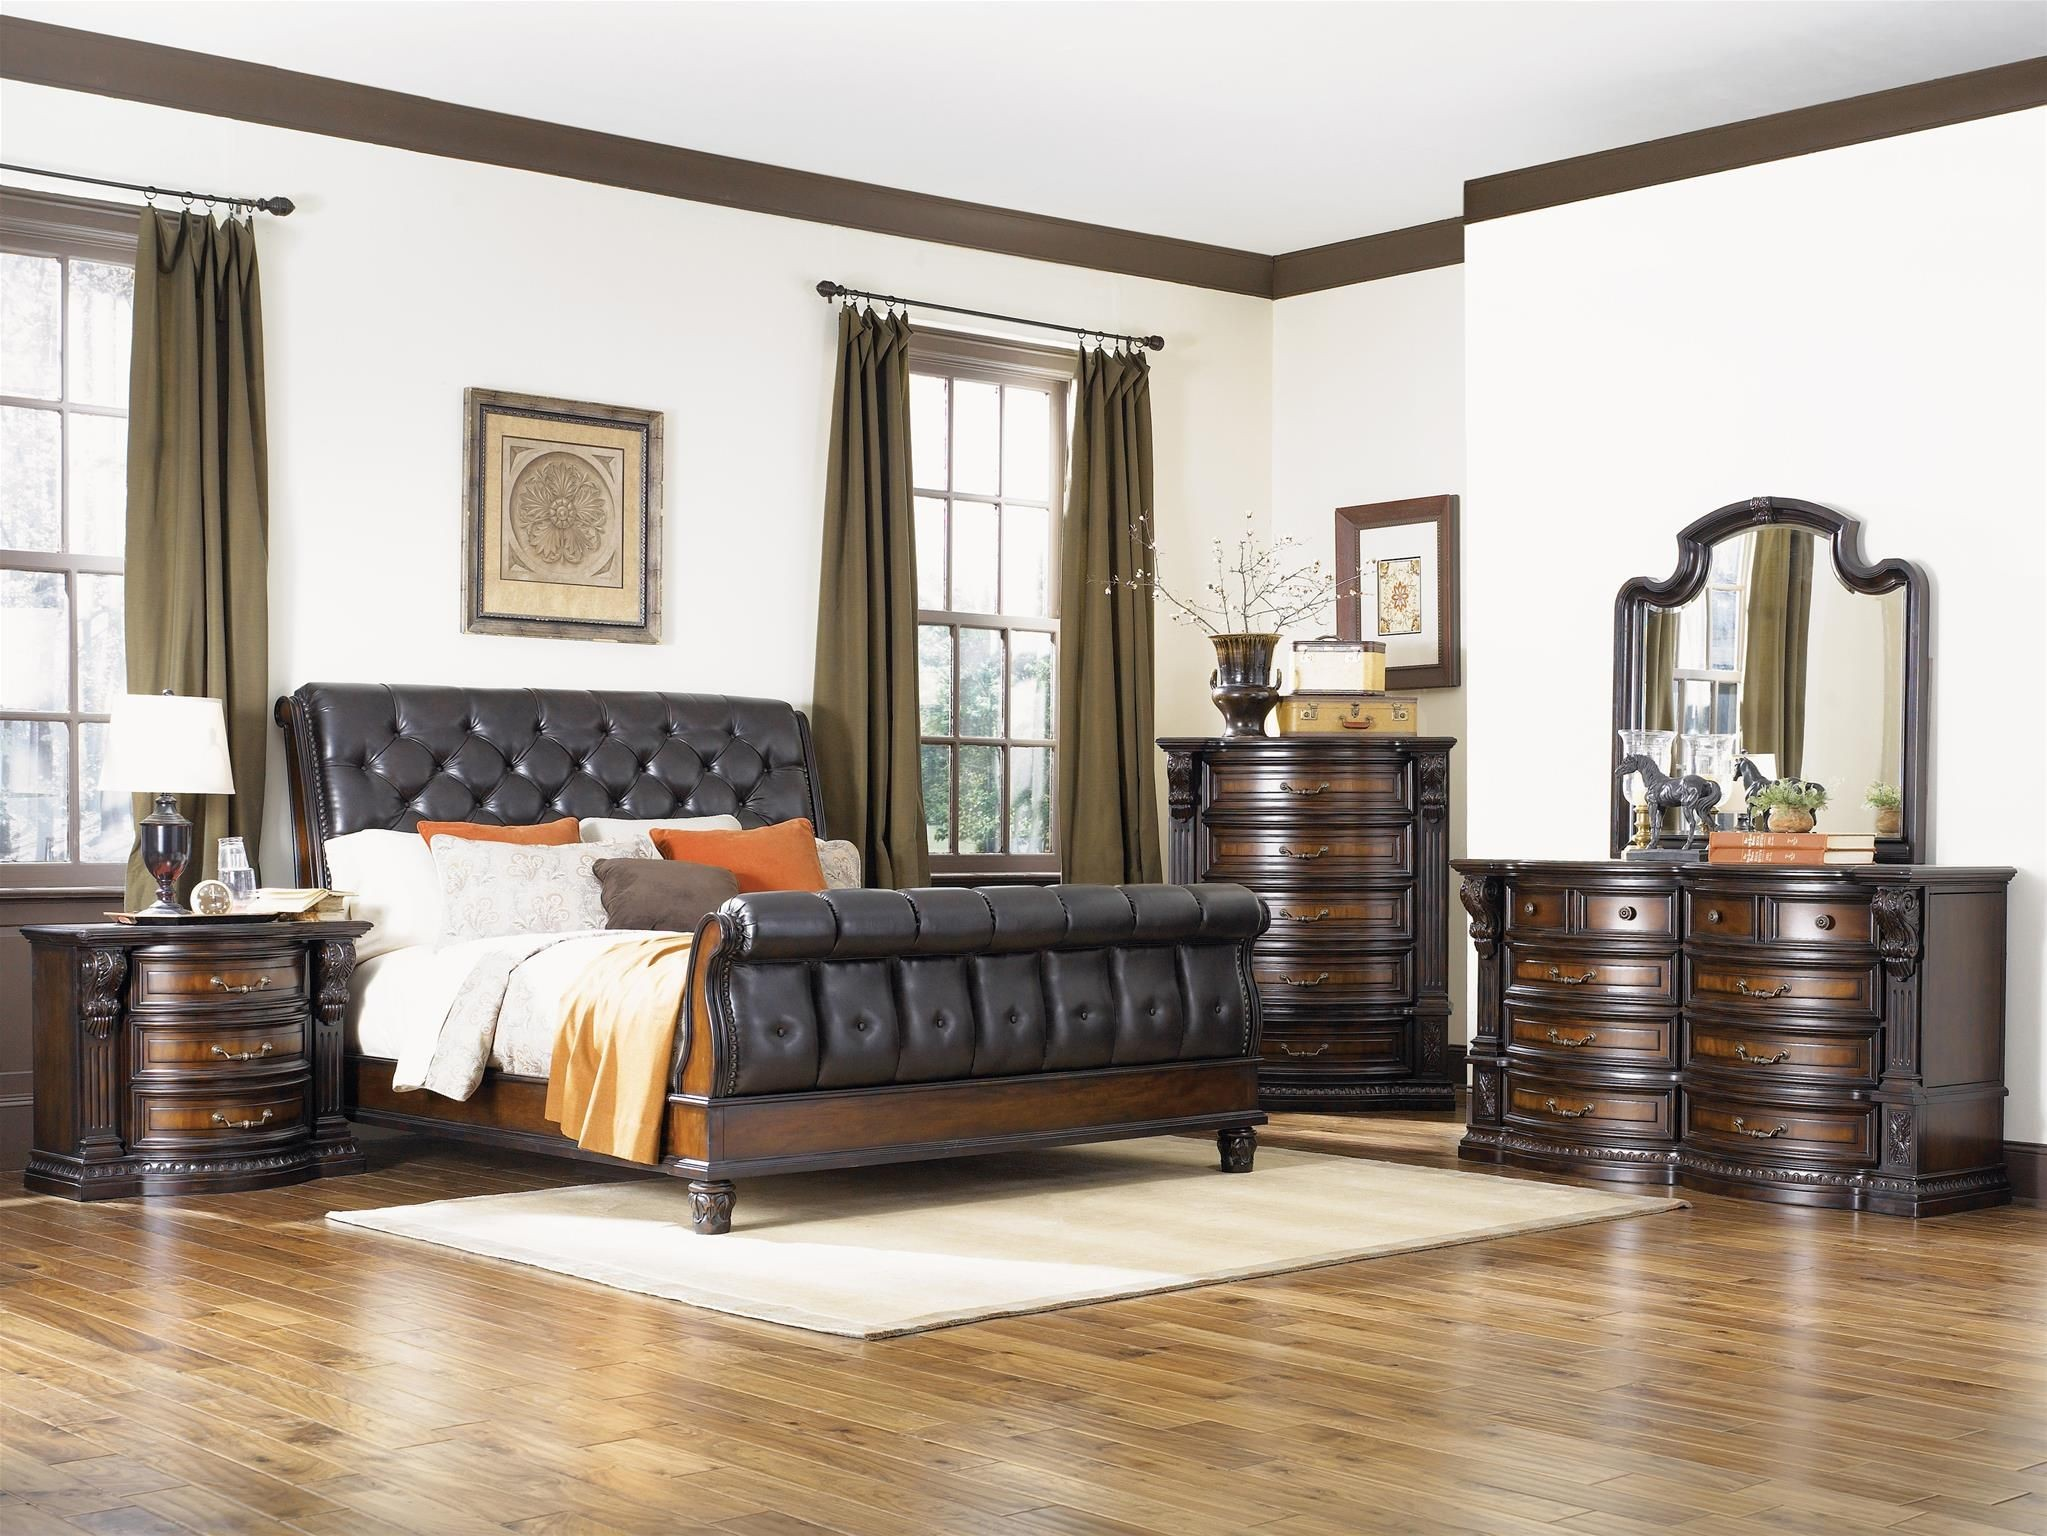 Grand Estates Cinnamon Sleigh Bedroom Set From Fairmont Designs C7102 64 63 58 Coleman Furniture